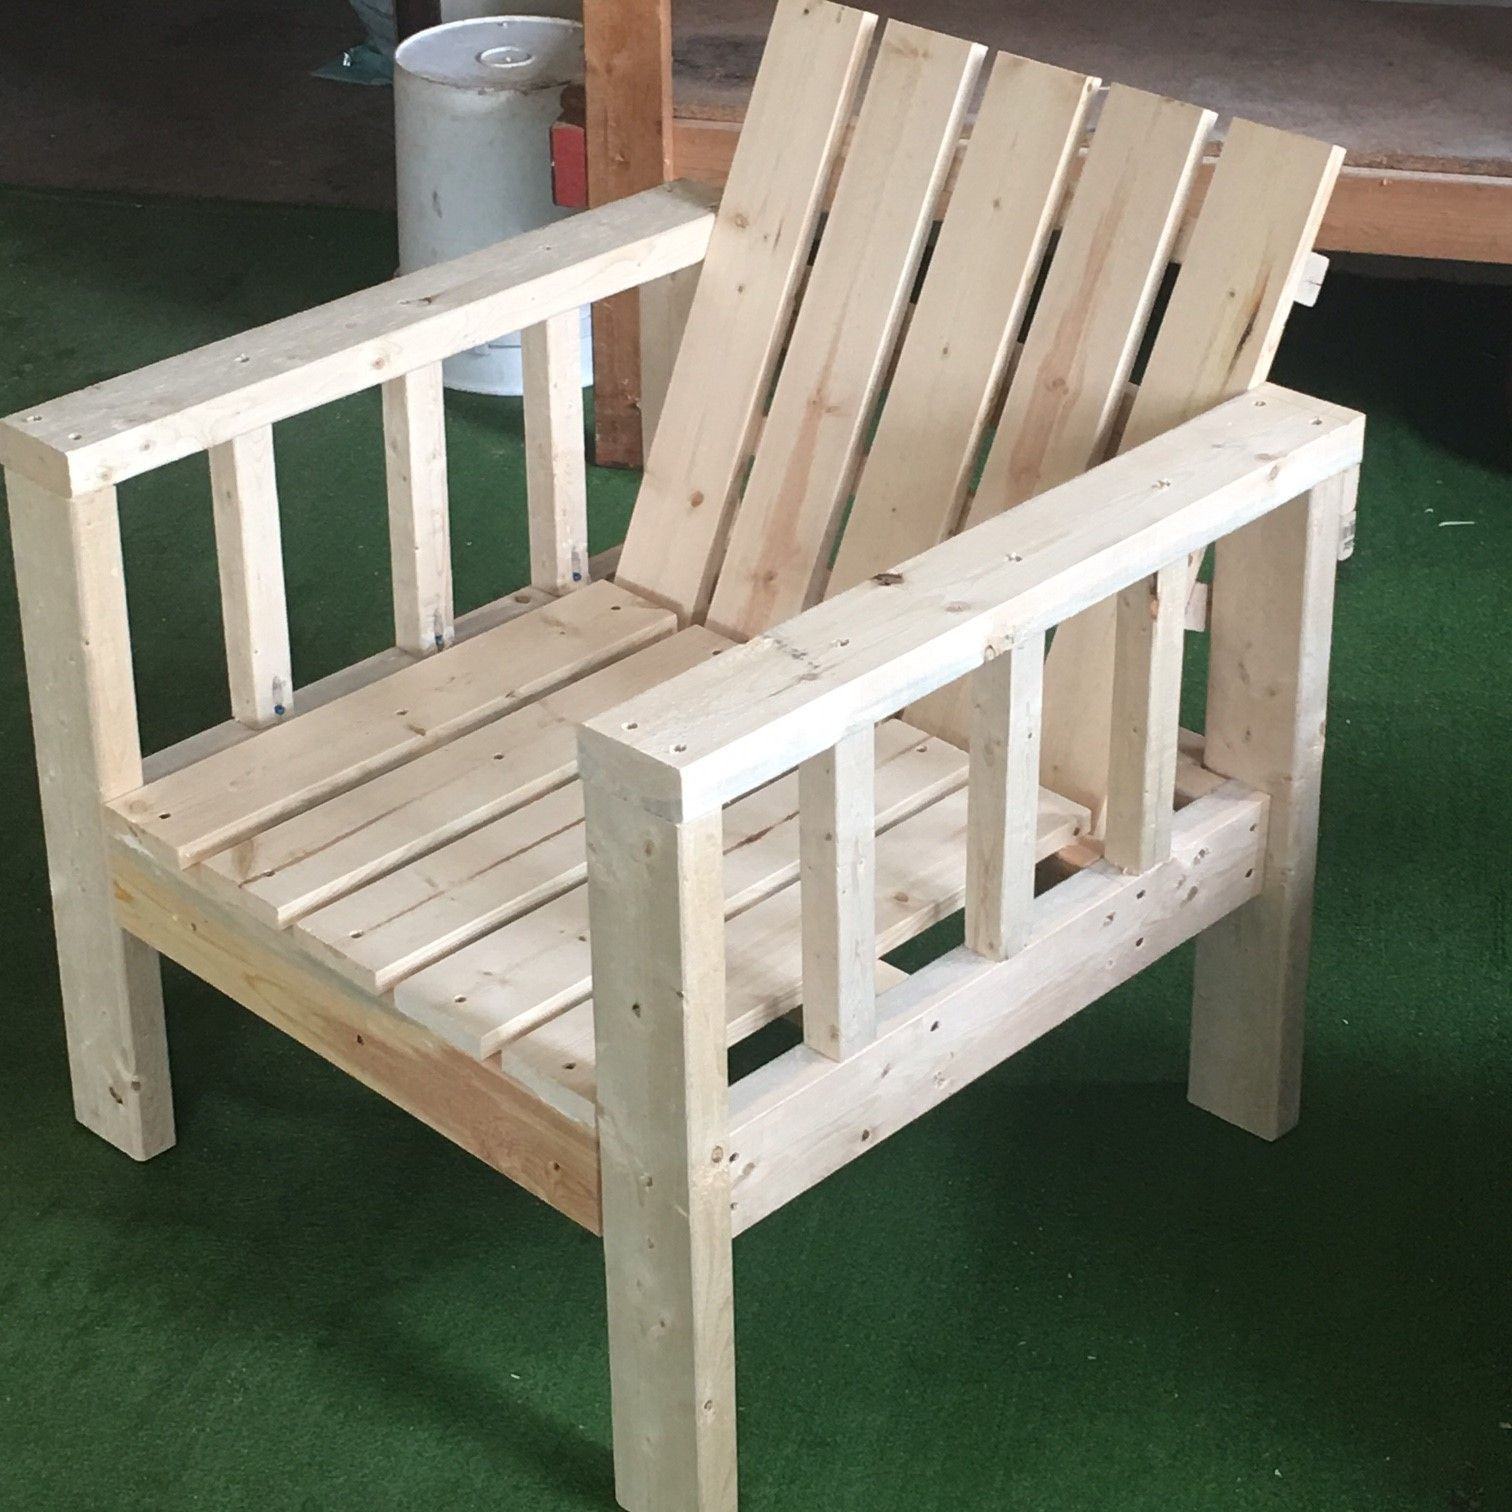 Fabulous Outdoor Furniture You Can Build With 2X4s  The Cottage Market2x4s